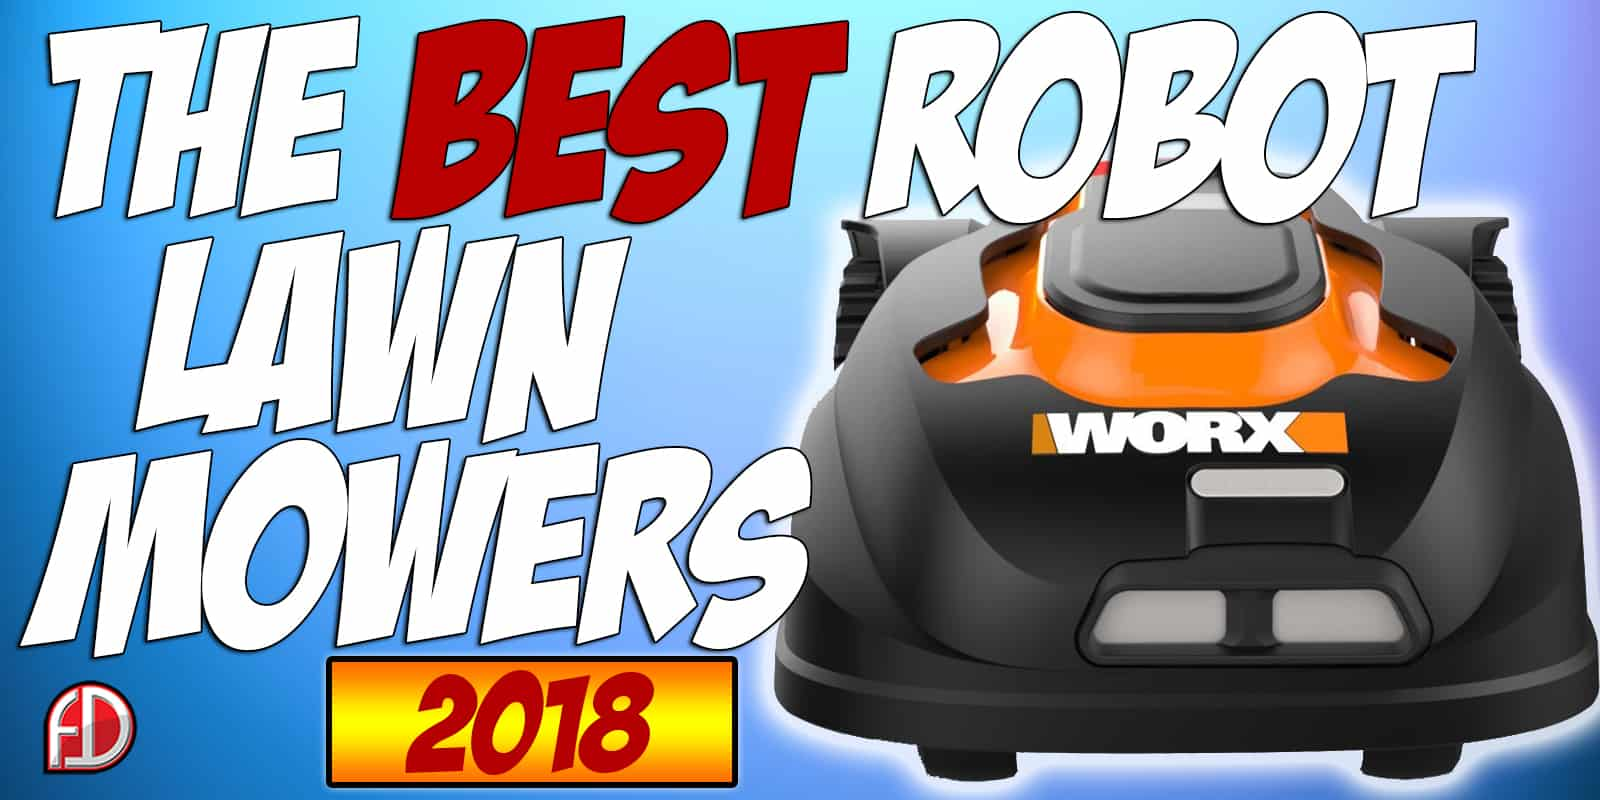 The Best Robot Lawn Mowers |2019 Reviews|Fully Droned